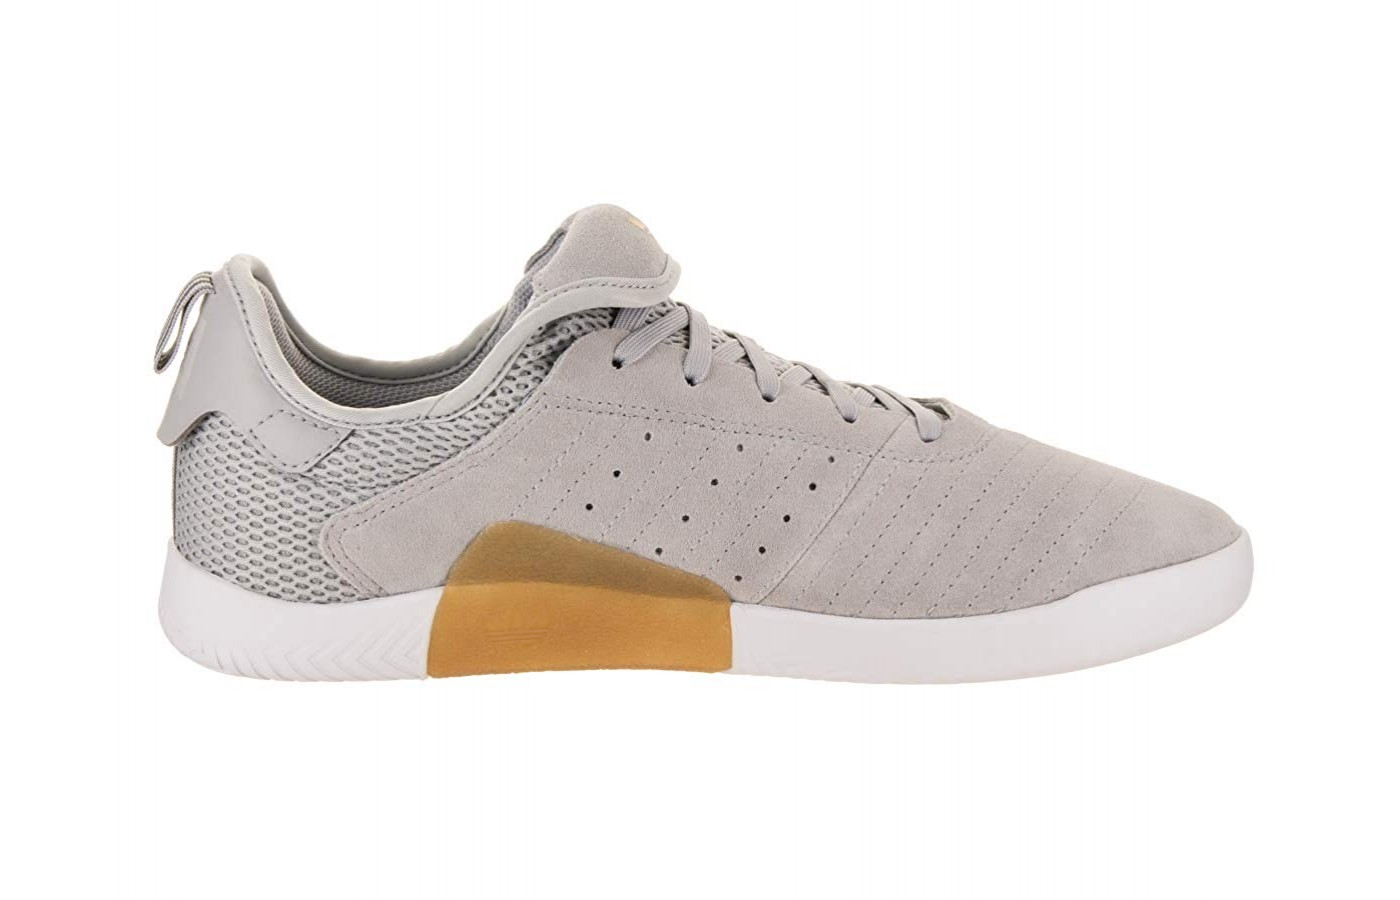 Right side view of Adidas 3ST.003